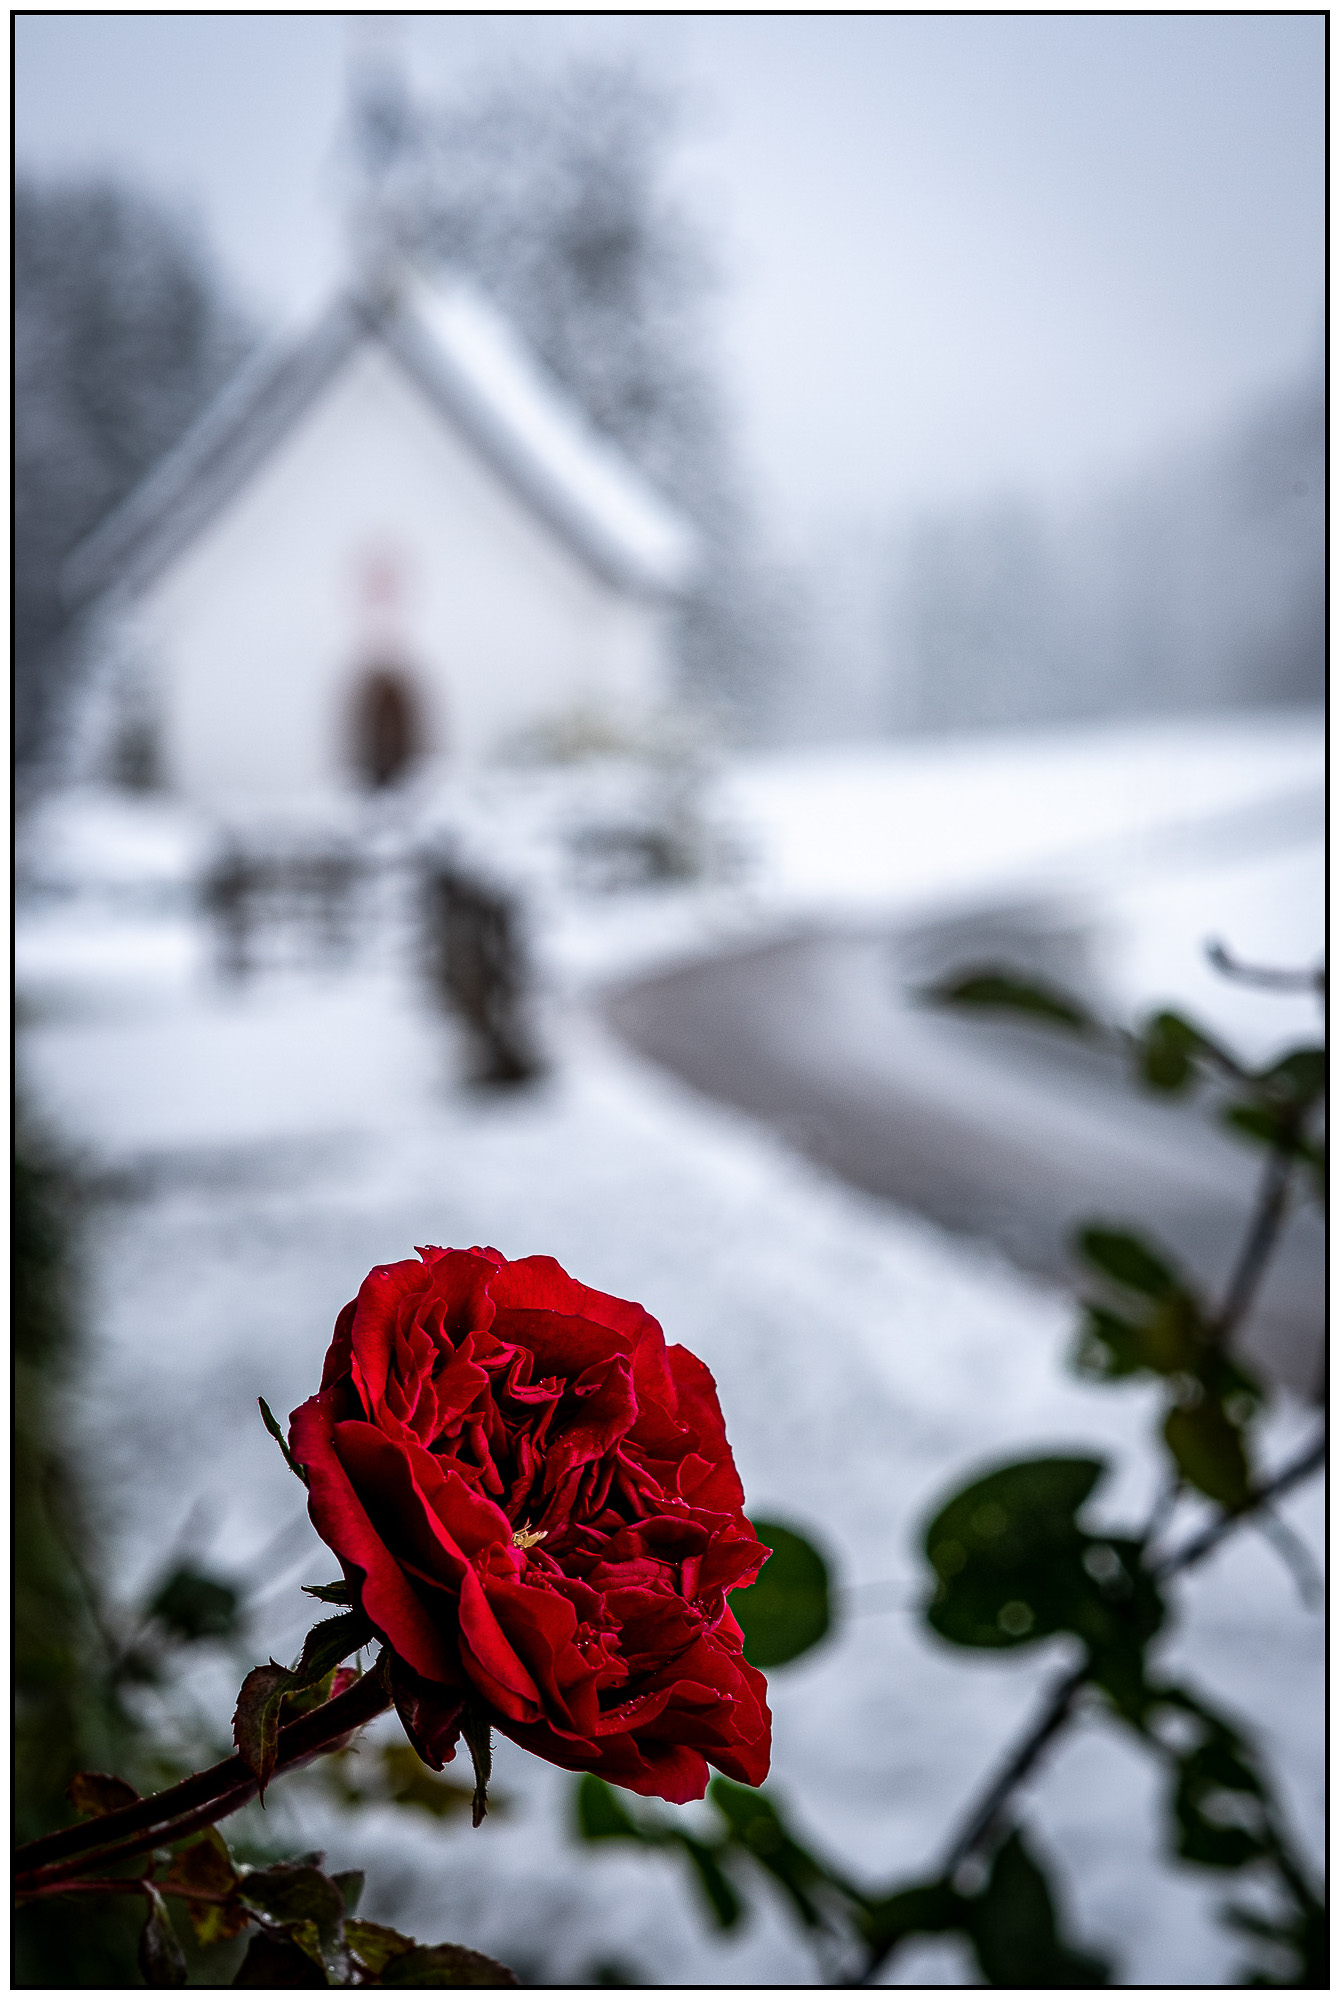 UnclePete / Erster Schneefall - Letzte Rose